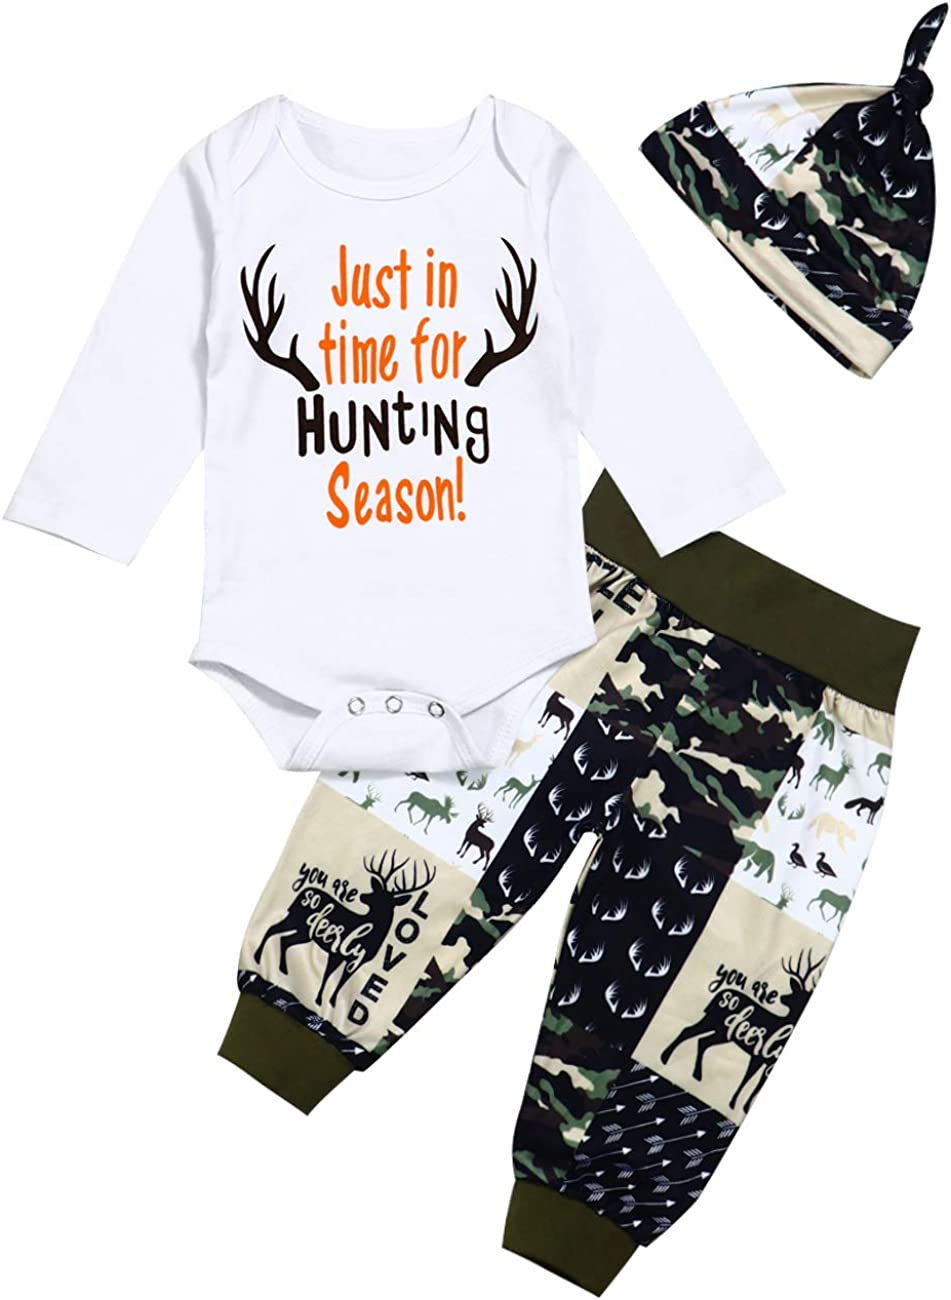 itkidboy Newborn Baby Boy Clothes New to The Crew Letter Print Romper+Long Pants+Hat 3PCS Outfits Set